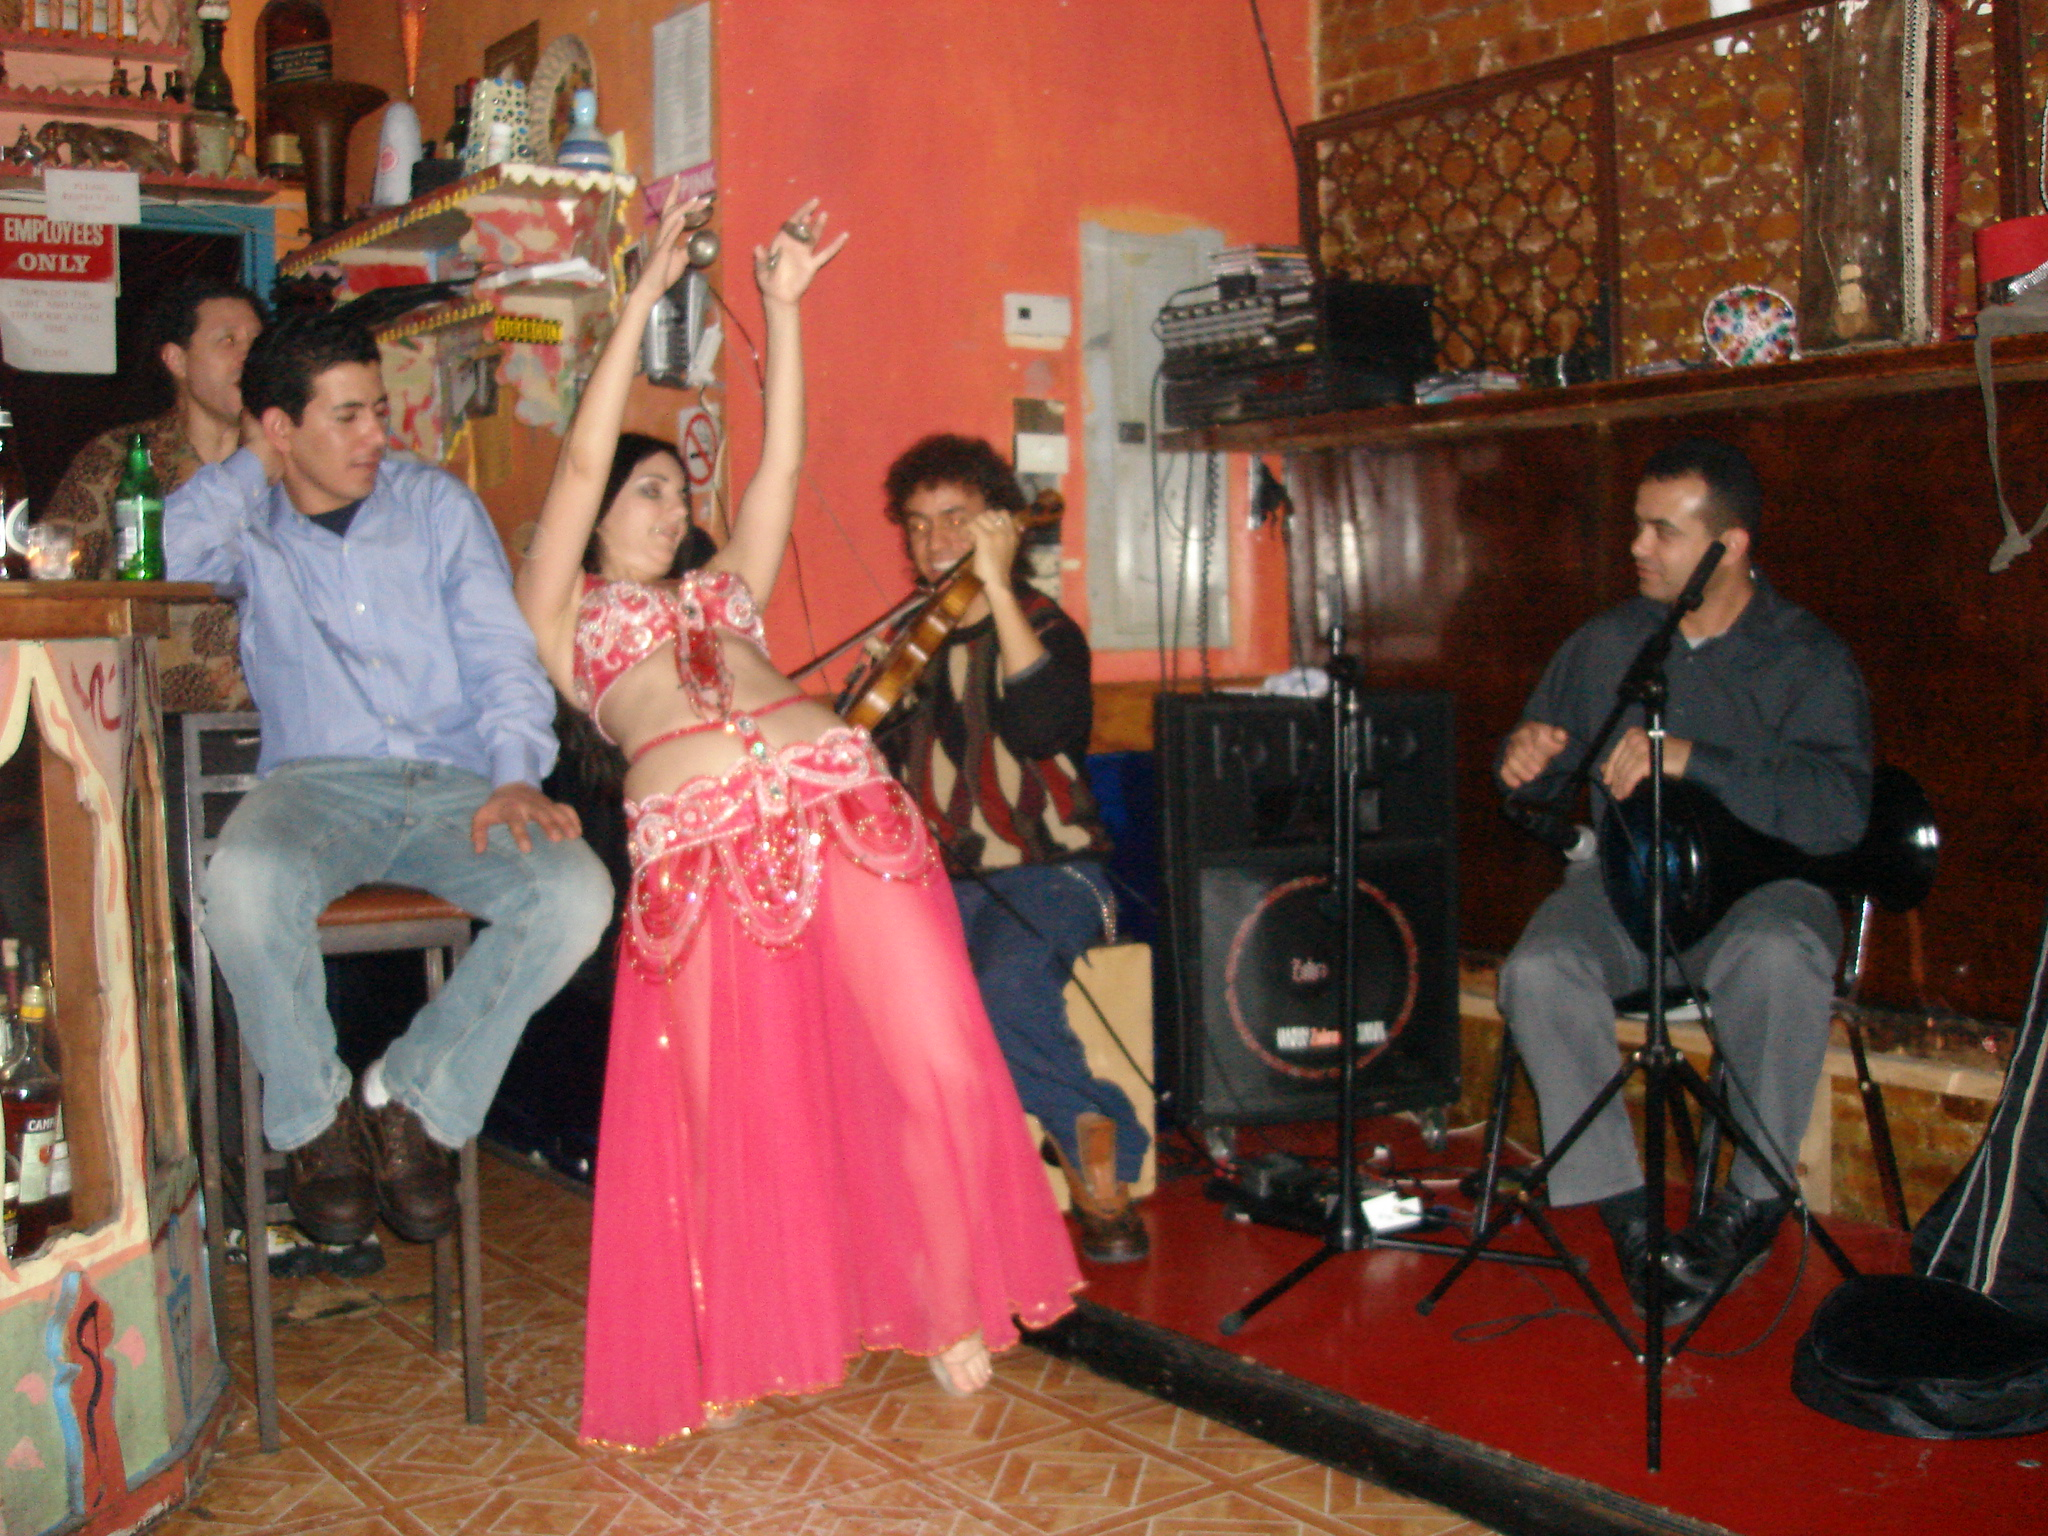 Belly Dancing: Are You SURE You Want to Use THAT Song?